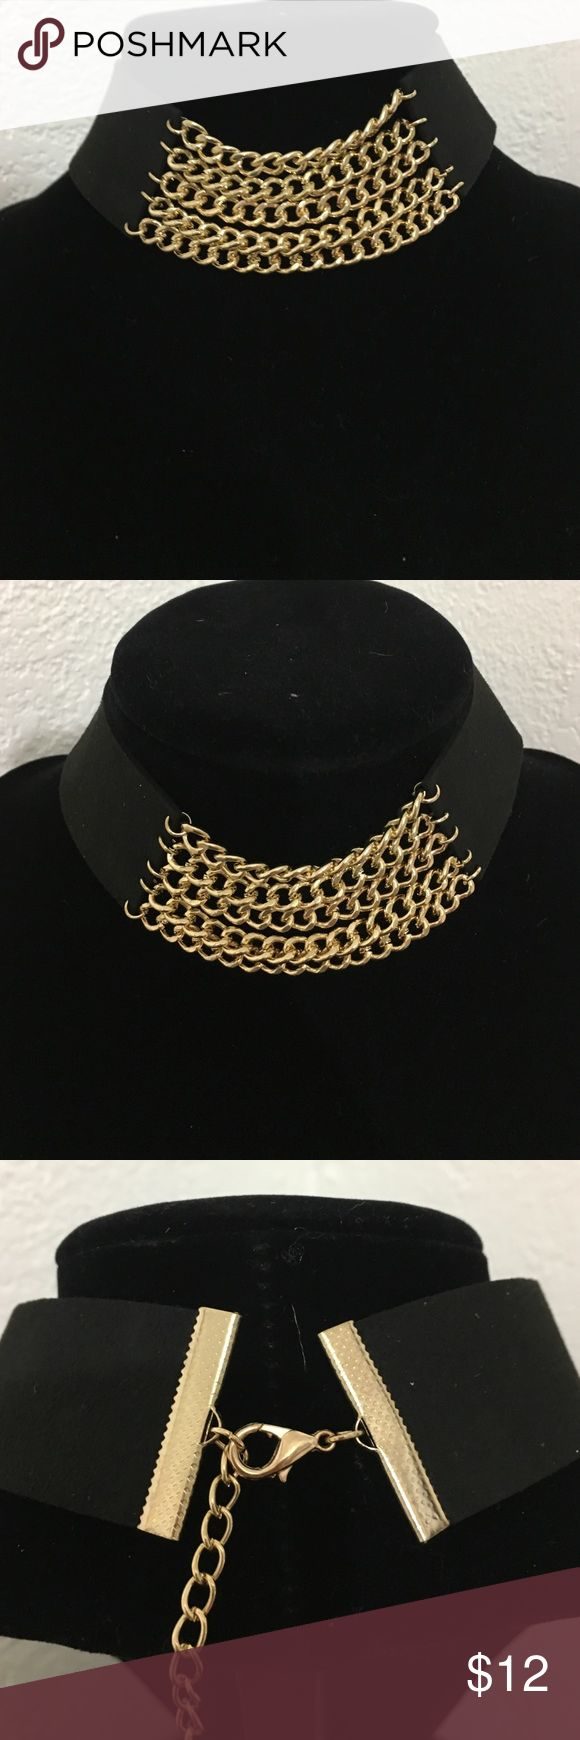 "Gold Chain Black Suede Choker! Sexy gold chain Choker! 12"" long 1.3"" thick Gold chain 2.5"" long Jewelry Necklaces"